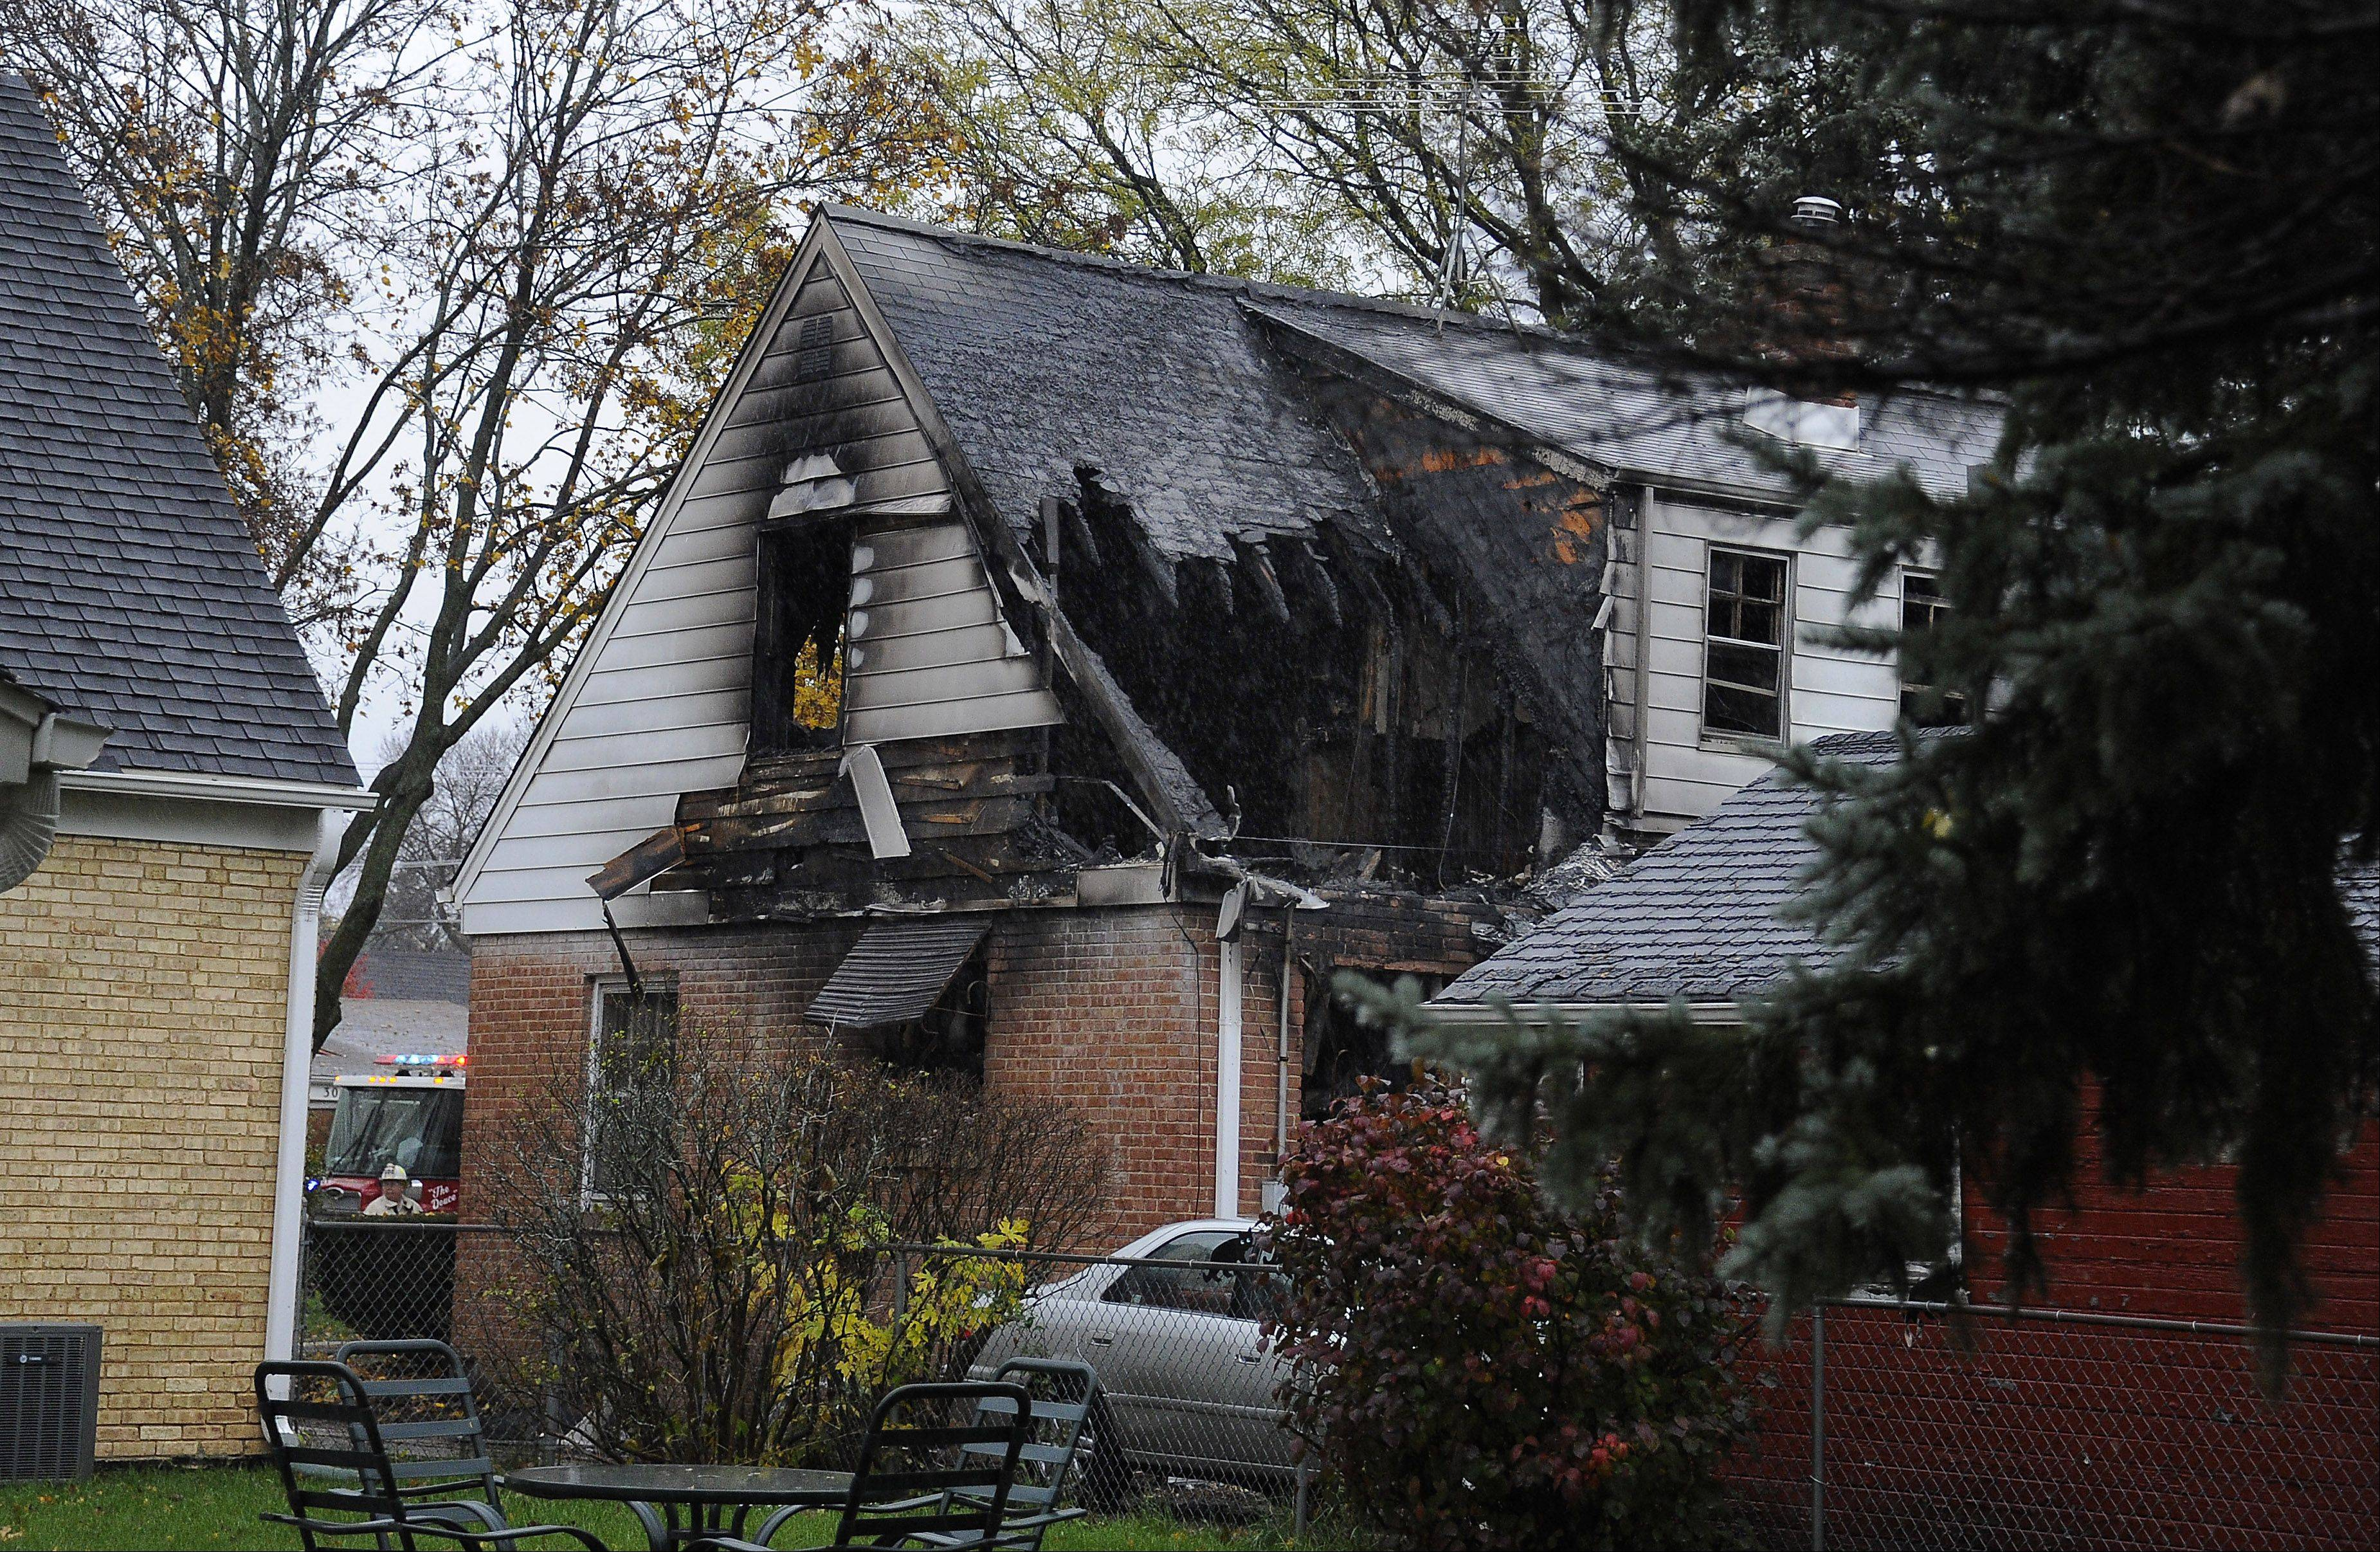 A 93-year-old Arlington Heights woman, her caregiver, and the caregiver's daughter, were killed Wednesday in a house fire.